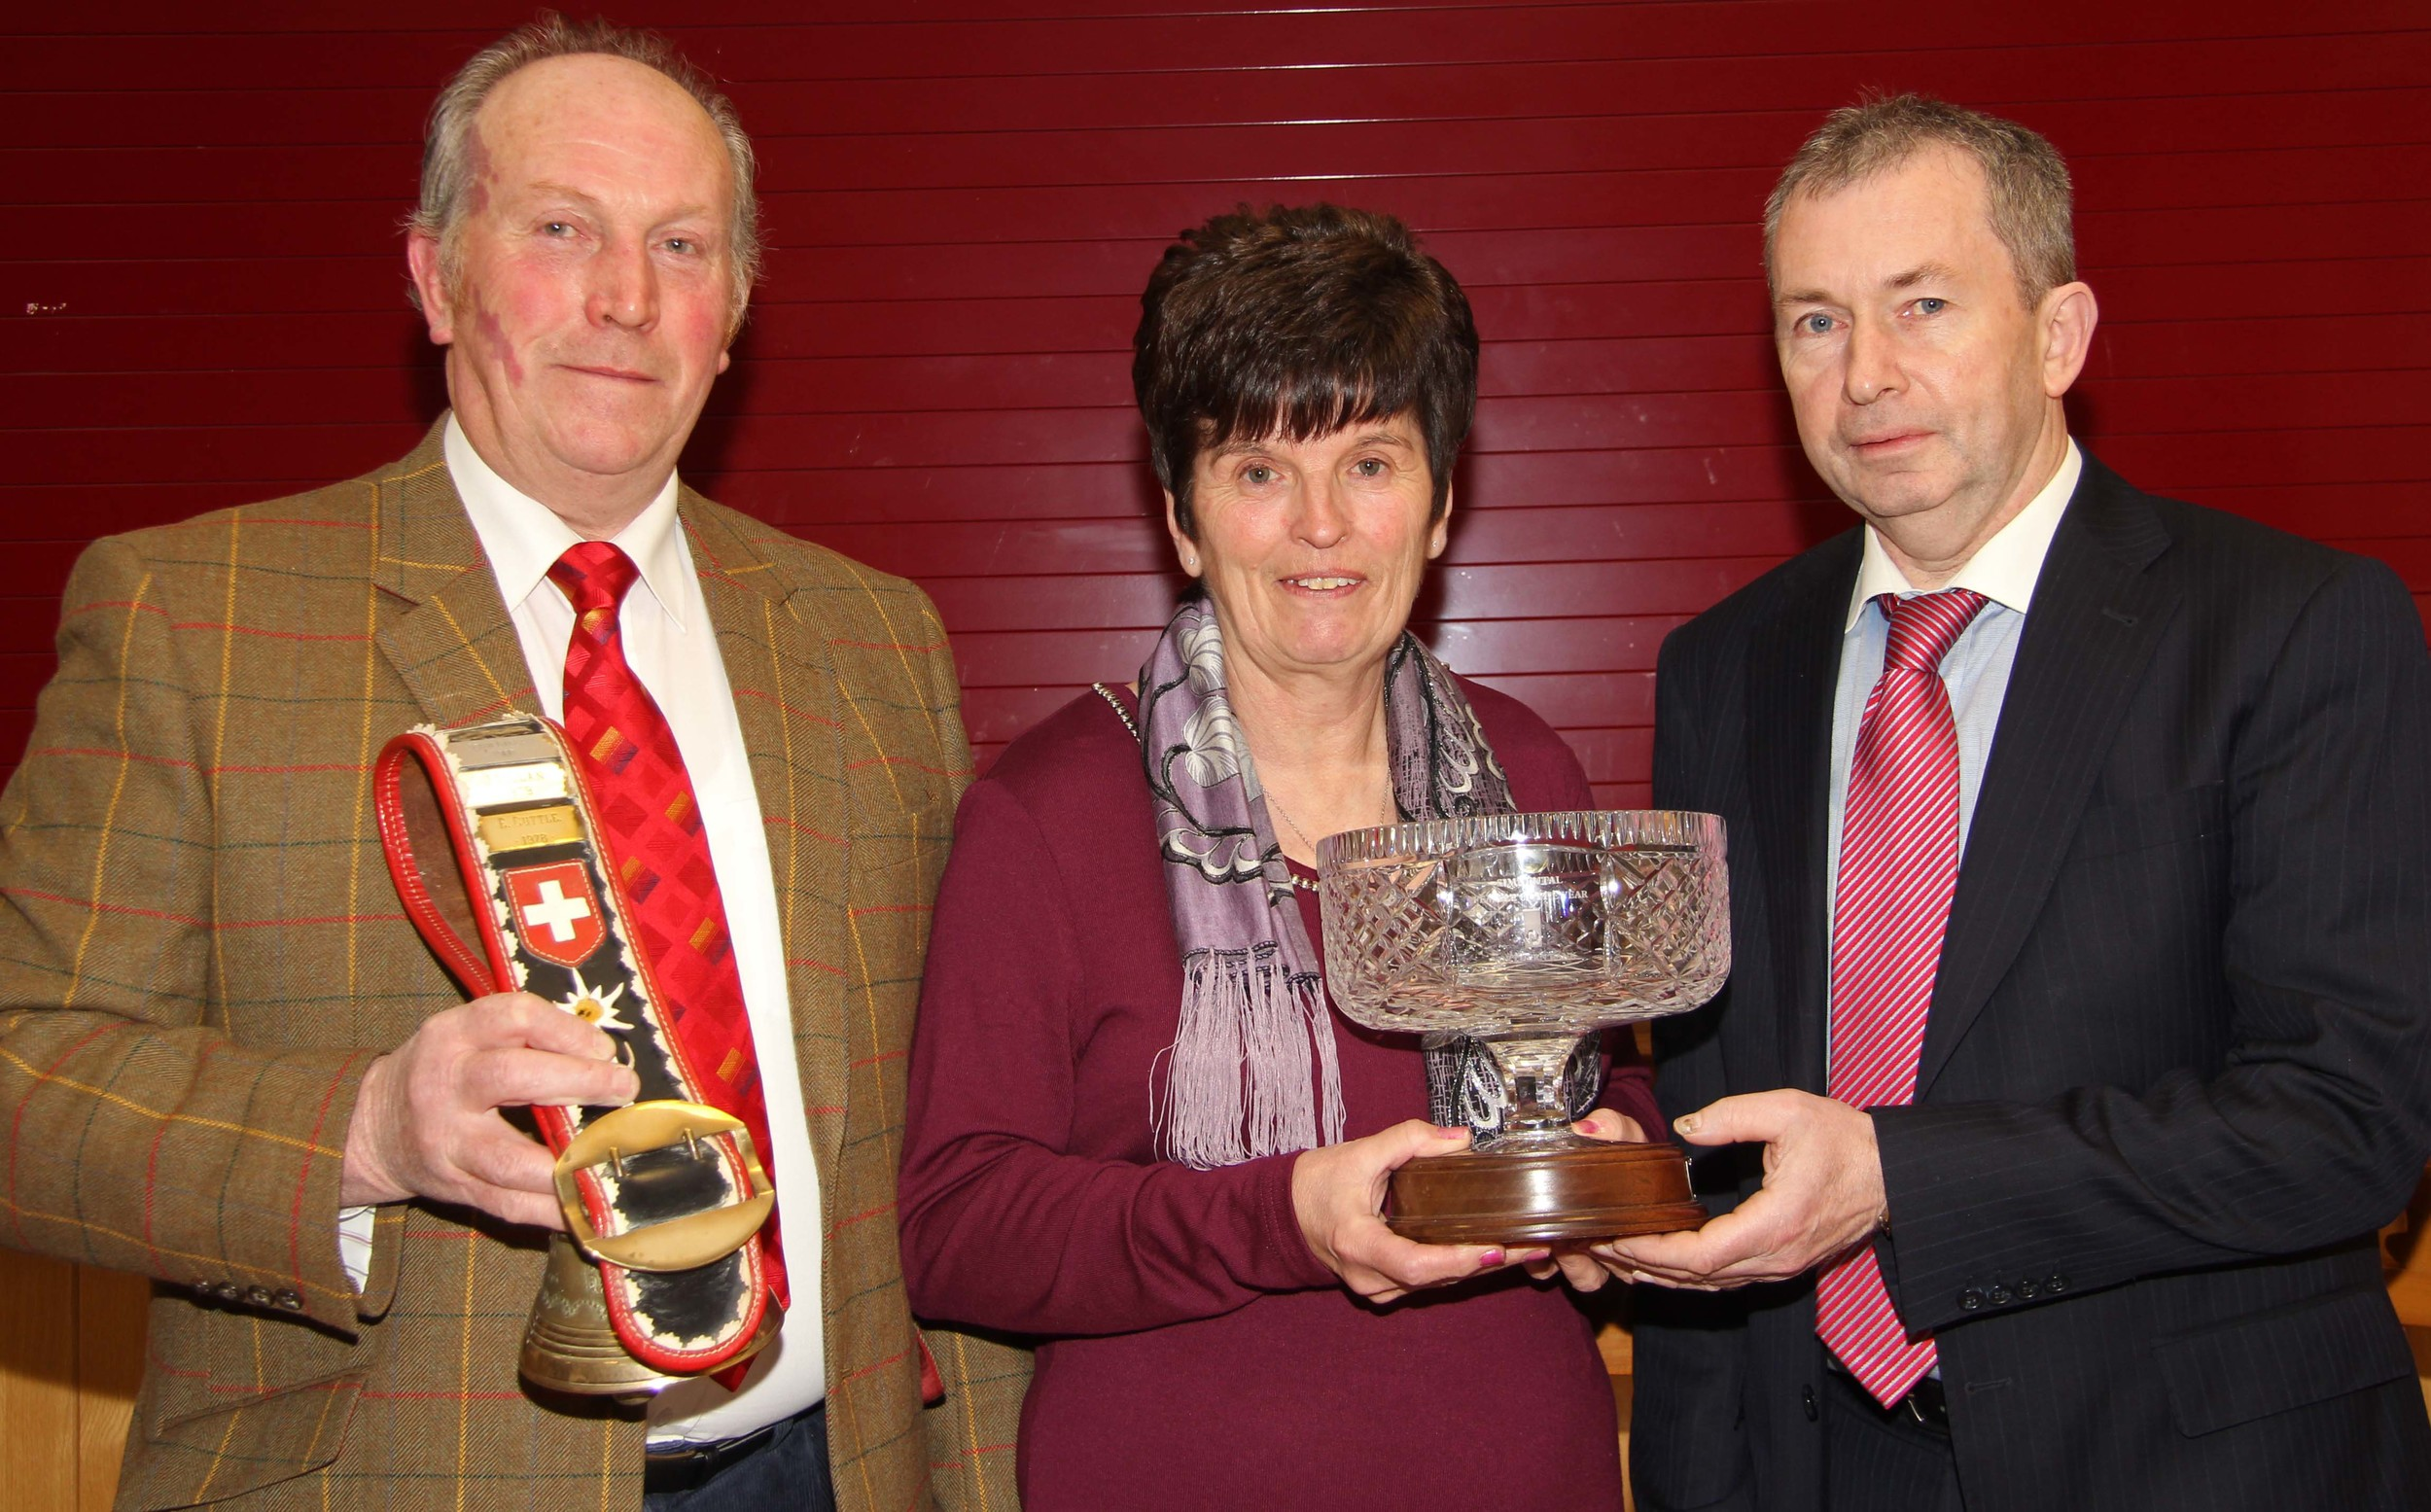 Joe and Phyllis Wilson, Newry, receive the female of the year award from Andrew Tecey, Dankse Bank, at the NI Simmental Club's annual dinner, Dungannon.